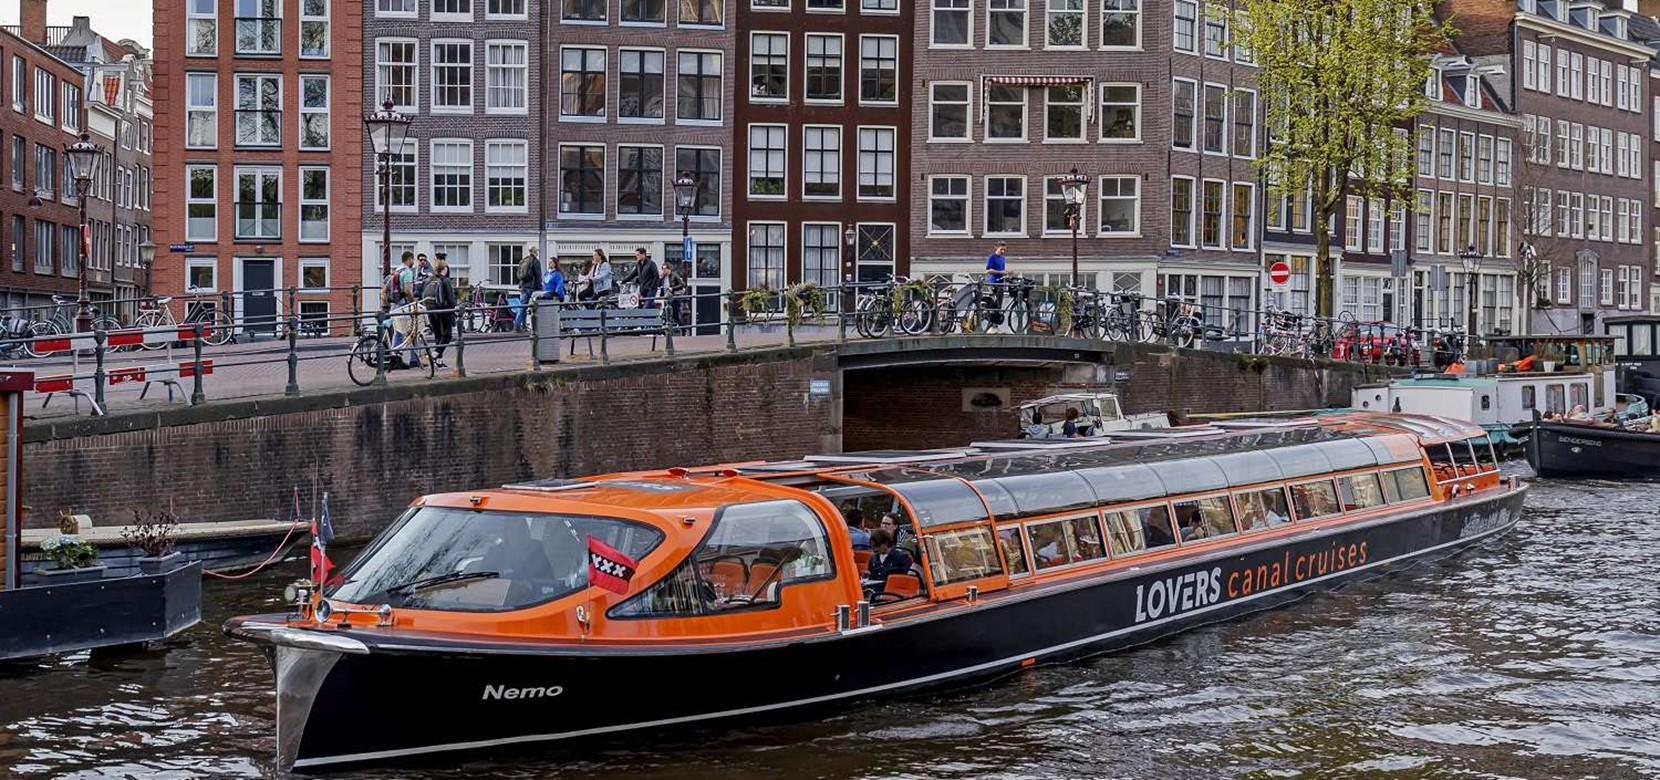 What's happening in Amsterdam during the holidays?